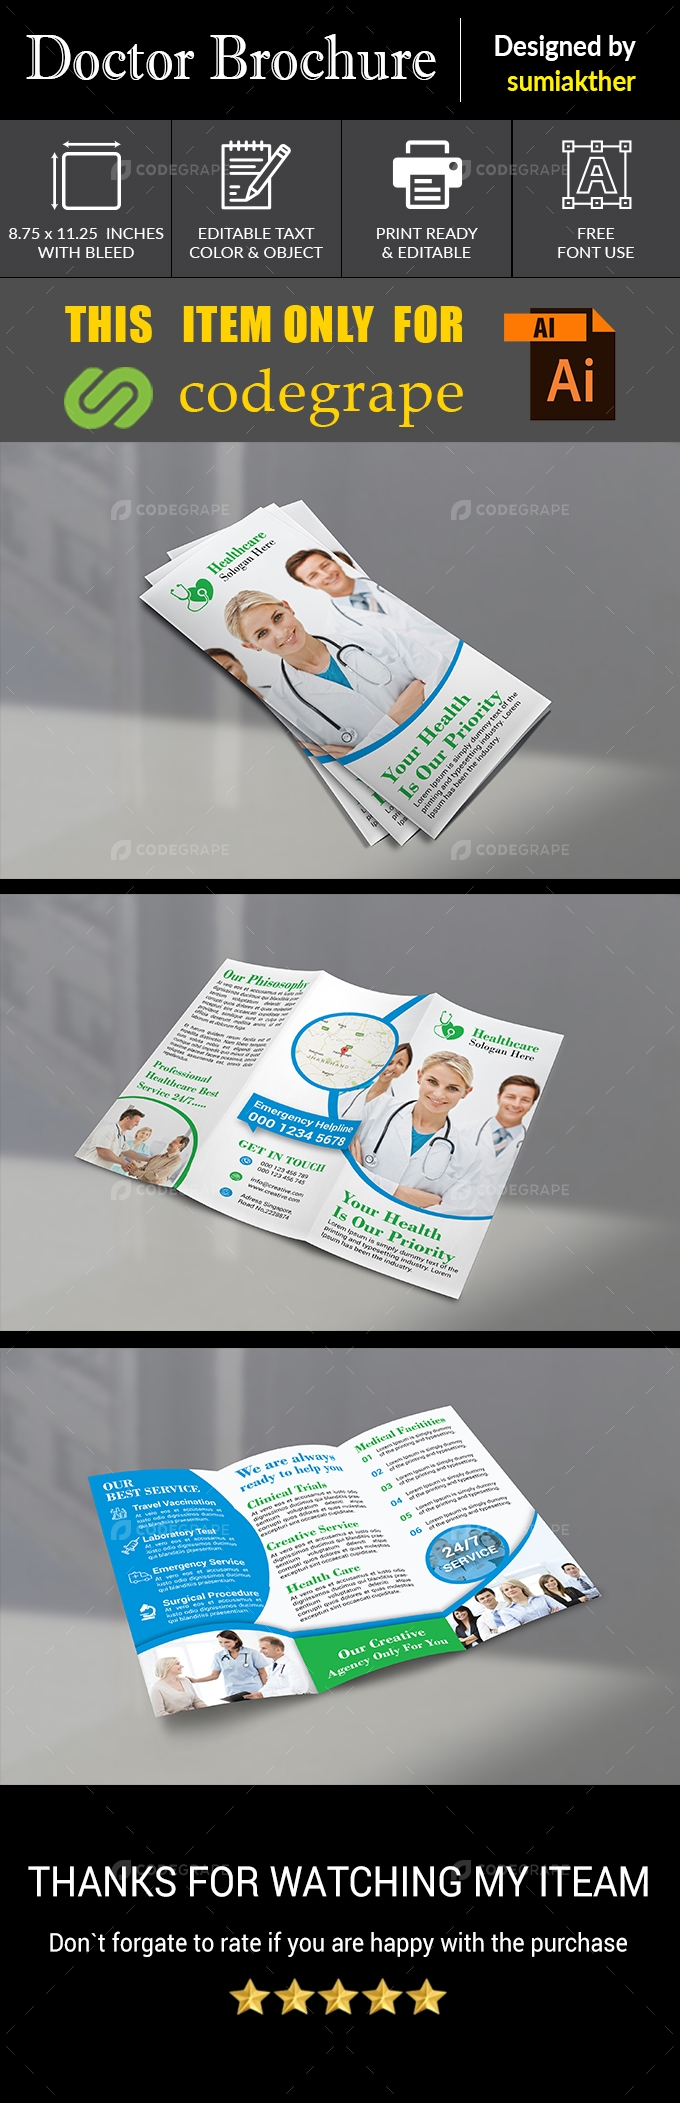 Corporate Trifold Doctor Brochure